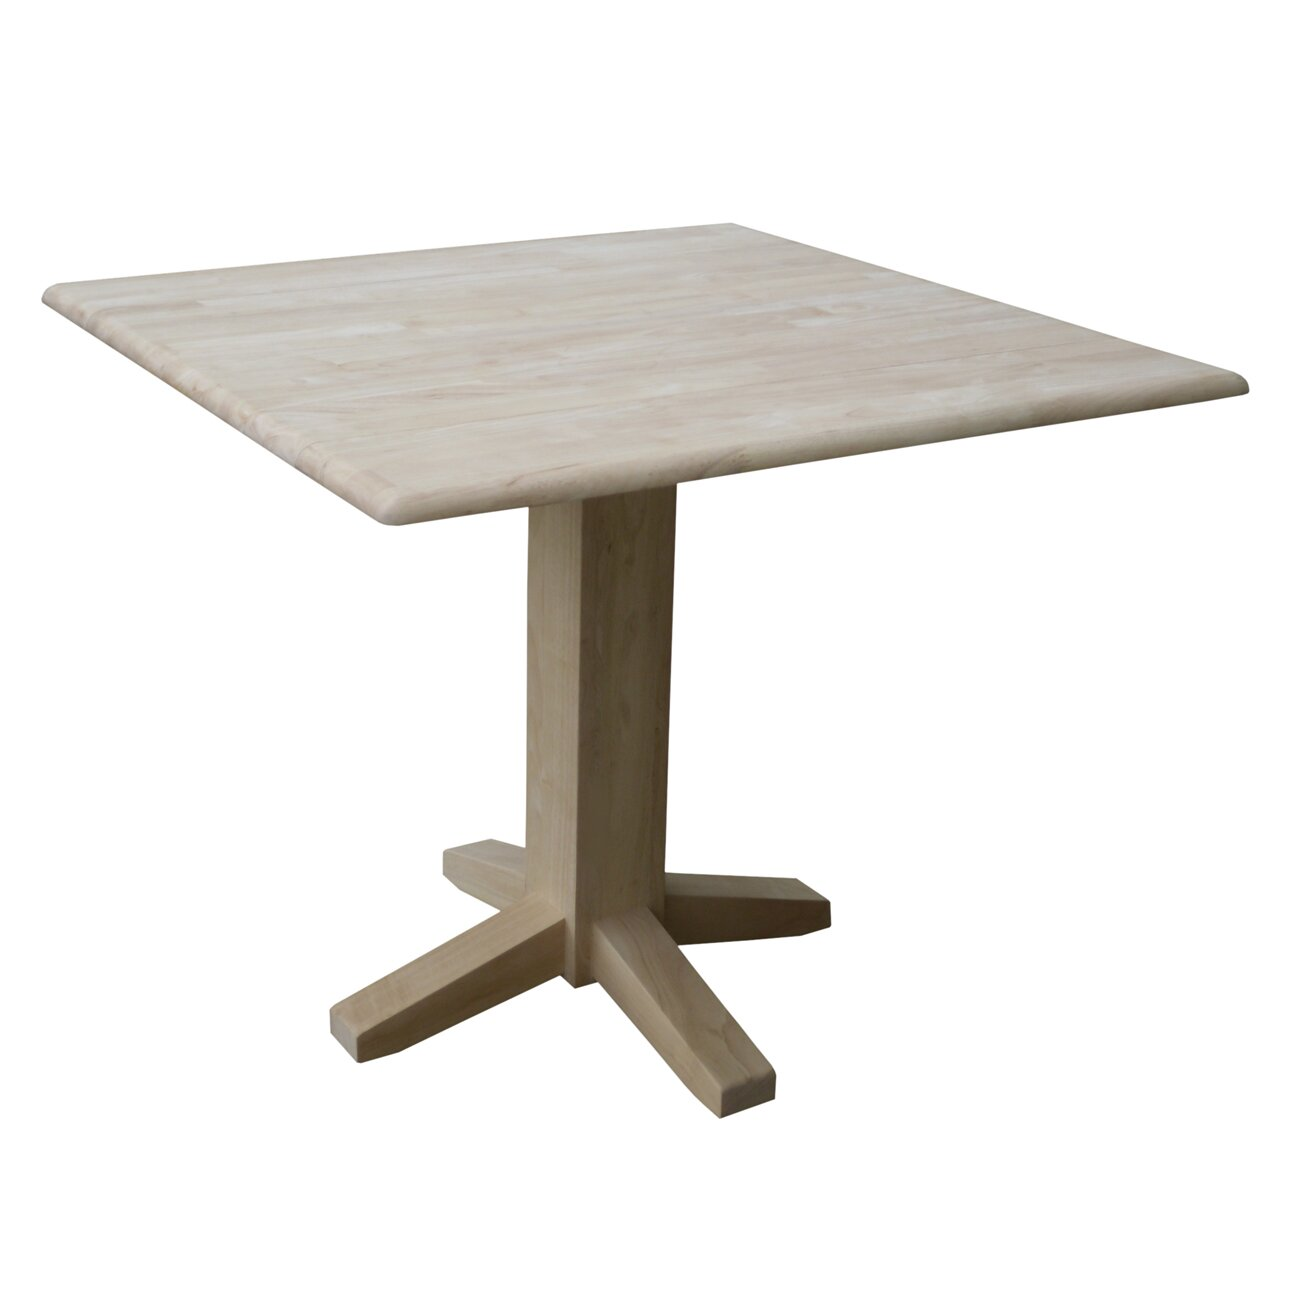 International concepts pedestal dining table reviews for Wayfair dining tables